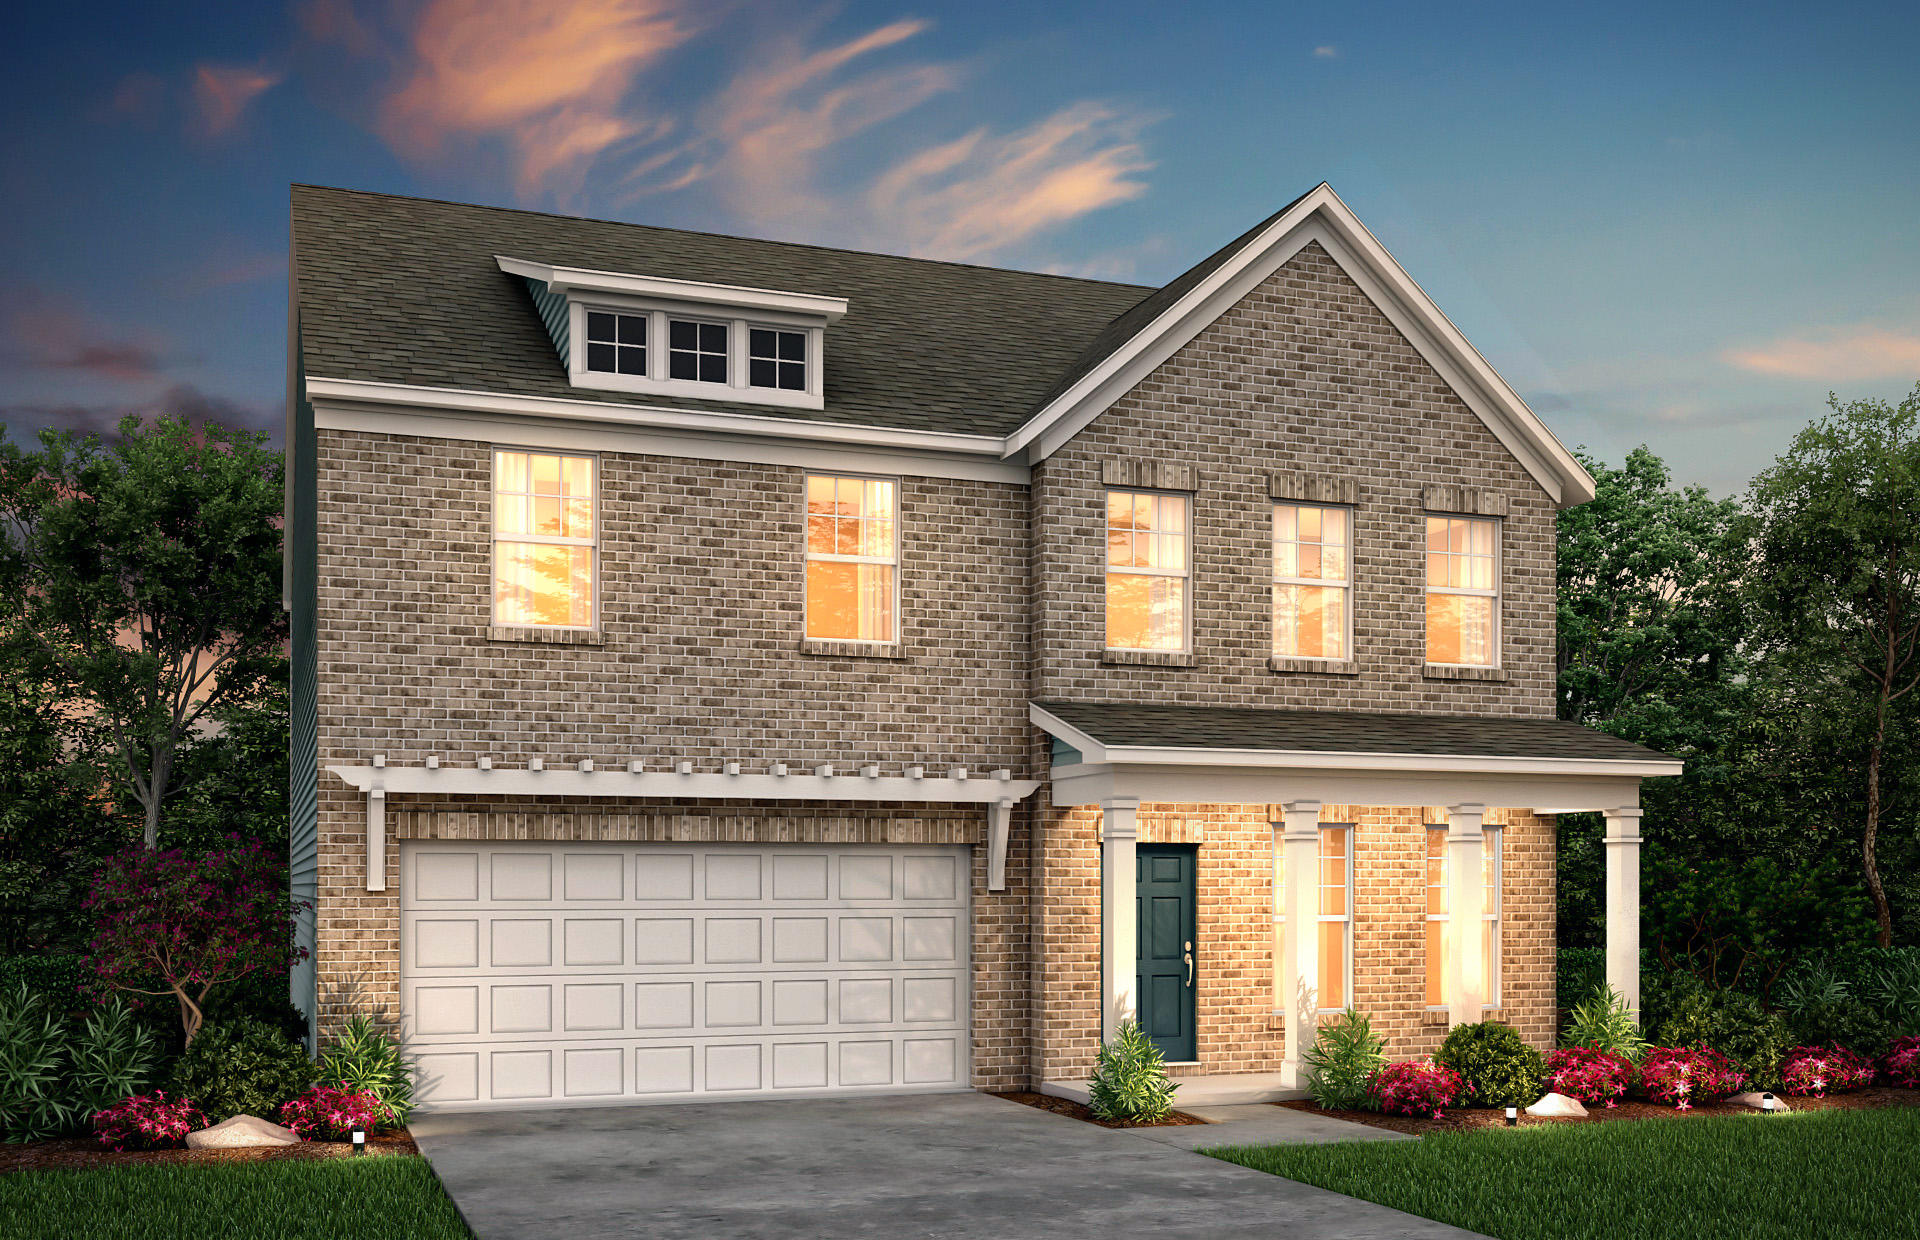 North Cove by Pulte Homes image 5